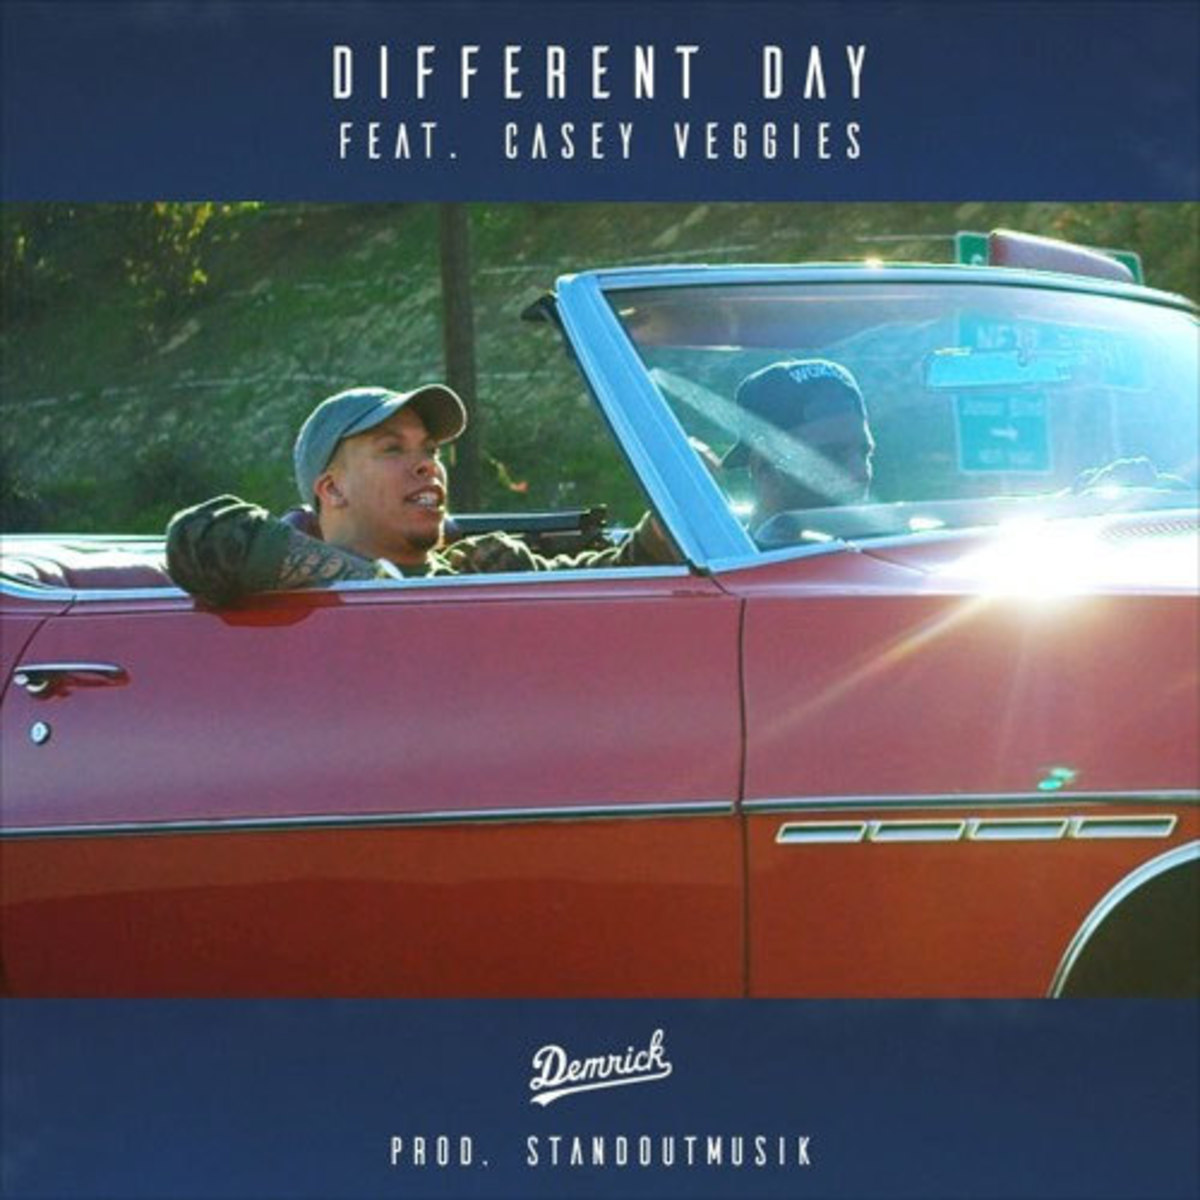 demrick-different-day.jpg